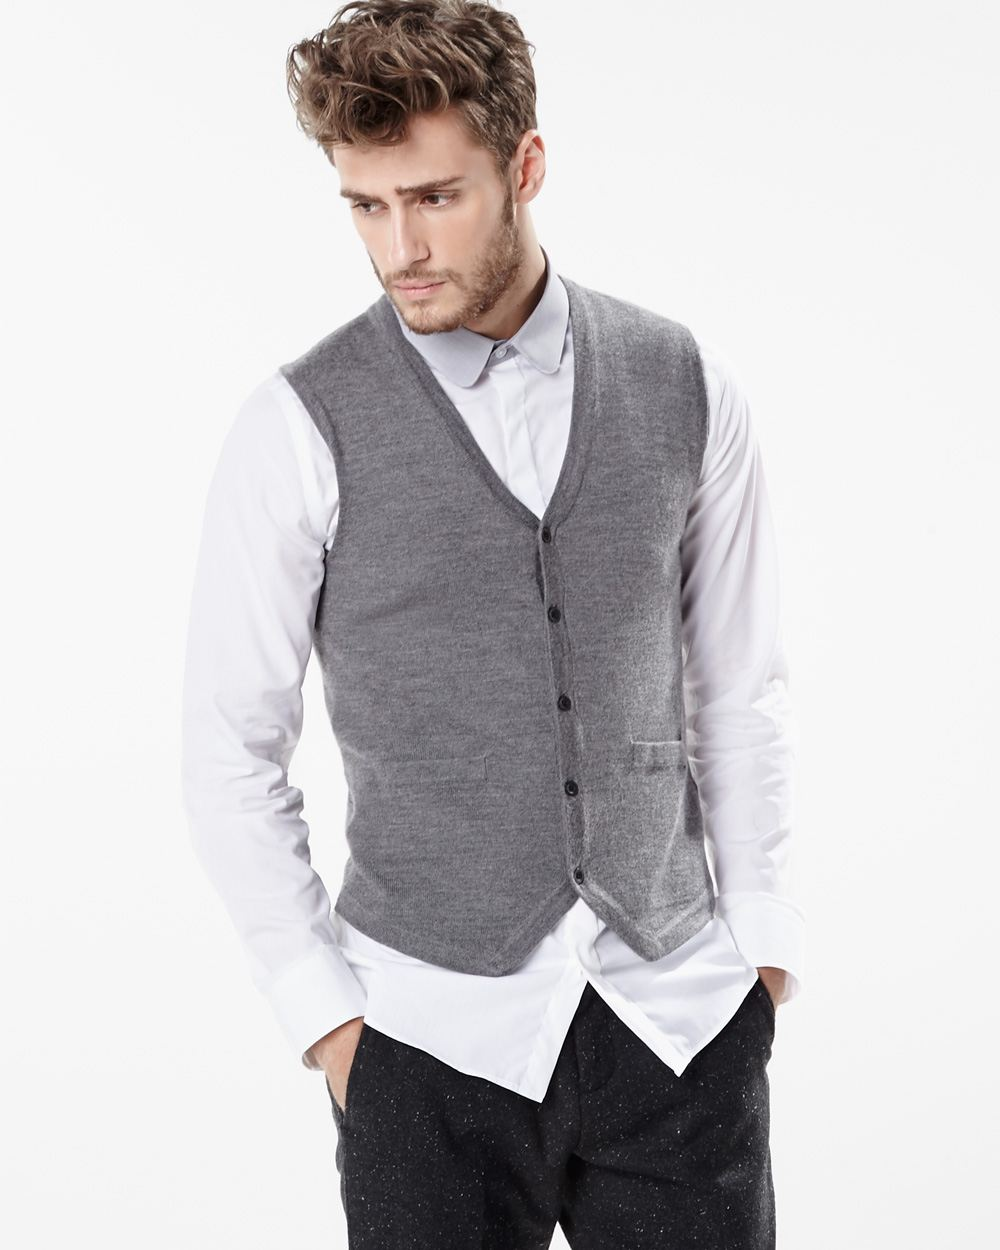 Shop online for Men's Sweater Vests at cuttackfirstboutique.cf Find V-neck & zip front styles in wool & mixed media. Free Shipping. Free Returns. All the time.